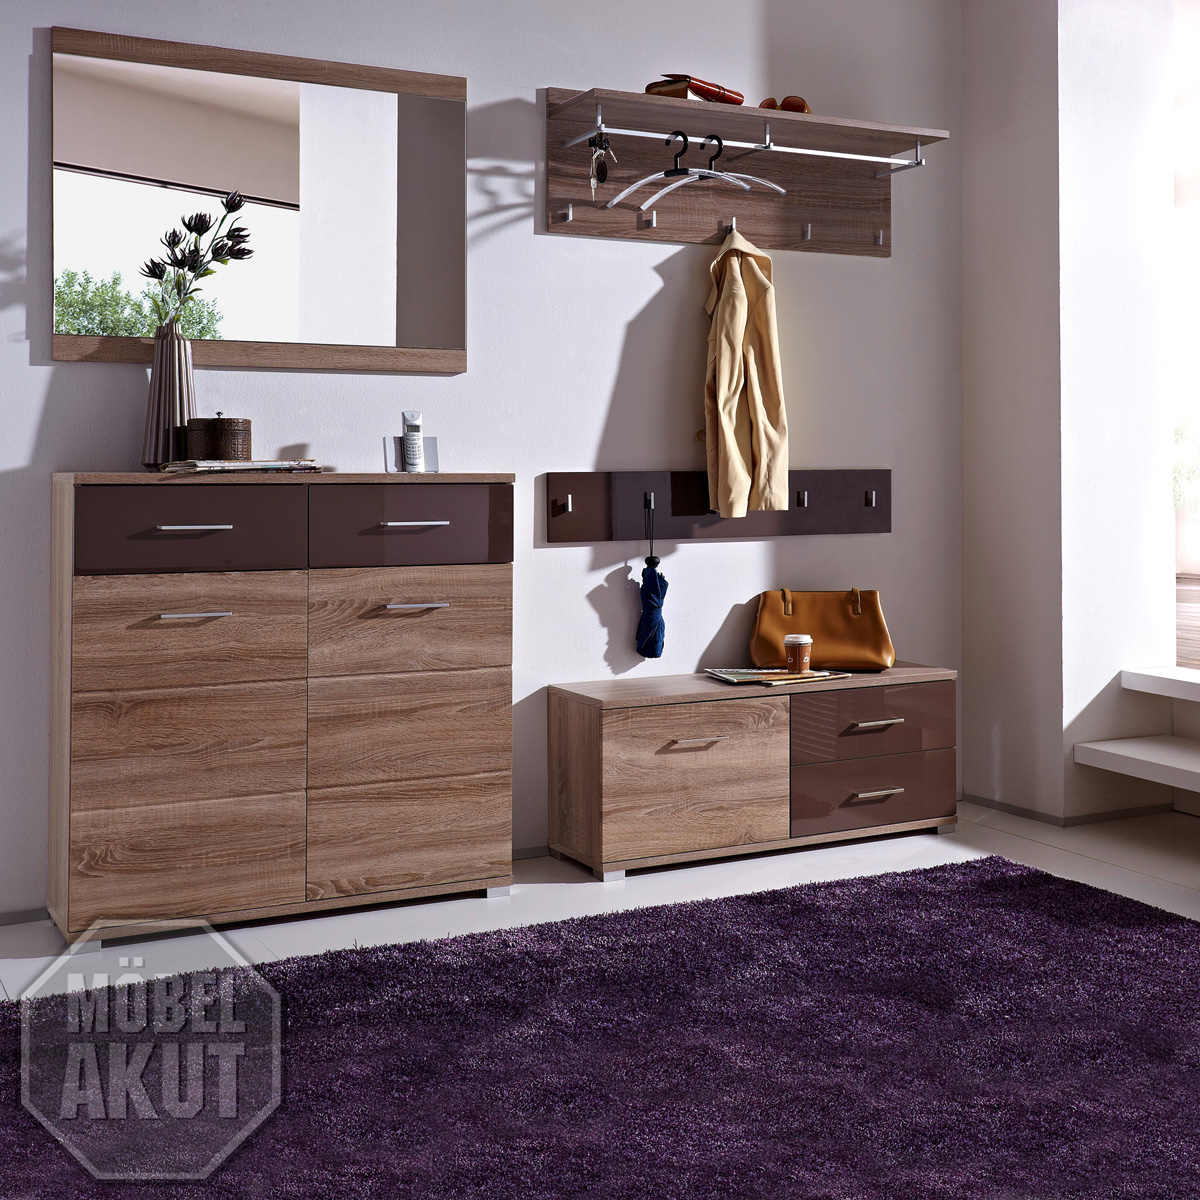 5 tlg garderobenset malo garderobe sonoma eiche. Black Bedroom Furniture Sets. Home Design Ideas